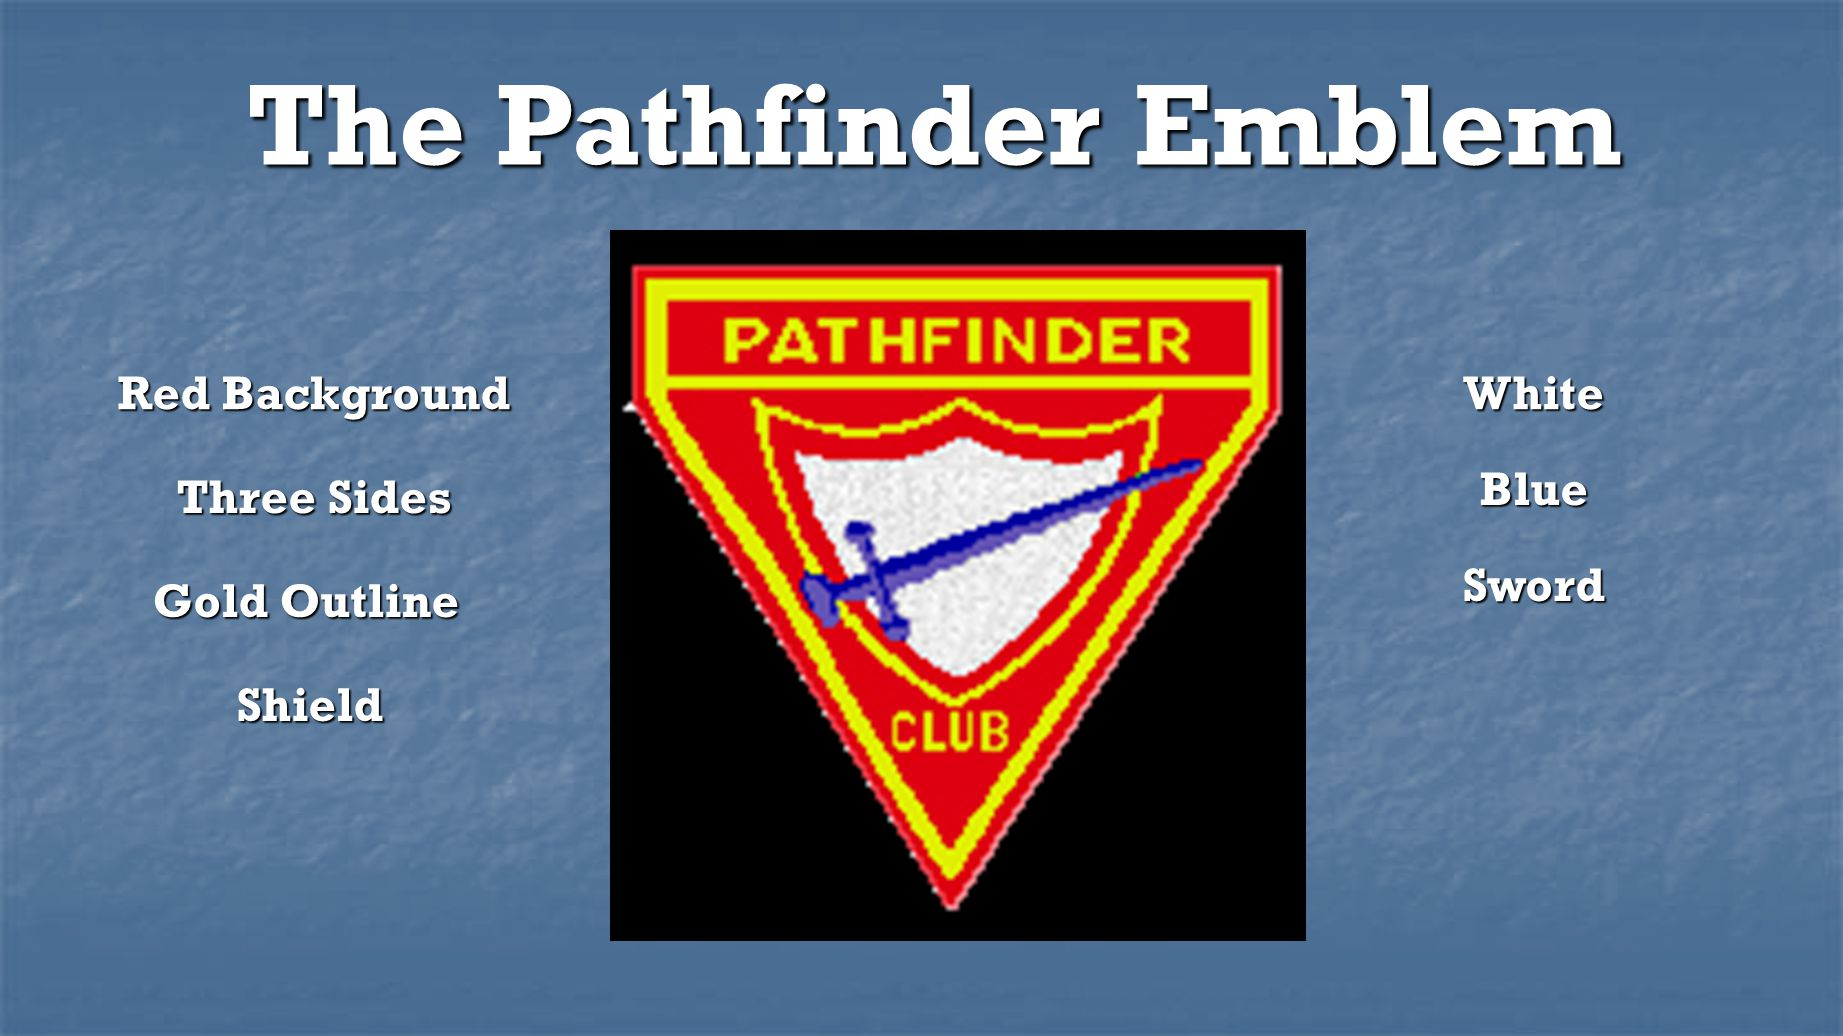 The Pathfinder Emblem Red Background Three Sides Gold Outline Shield White Blue Sword